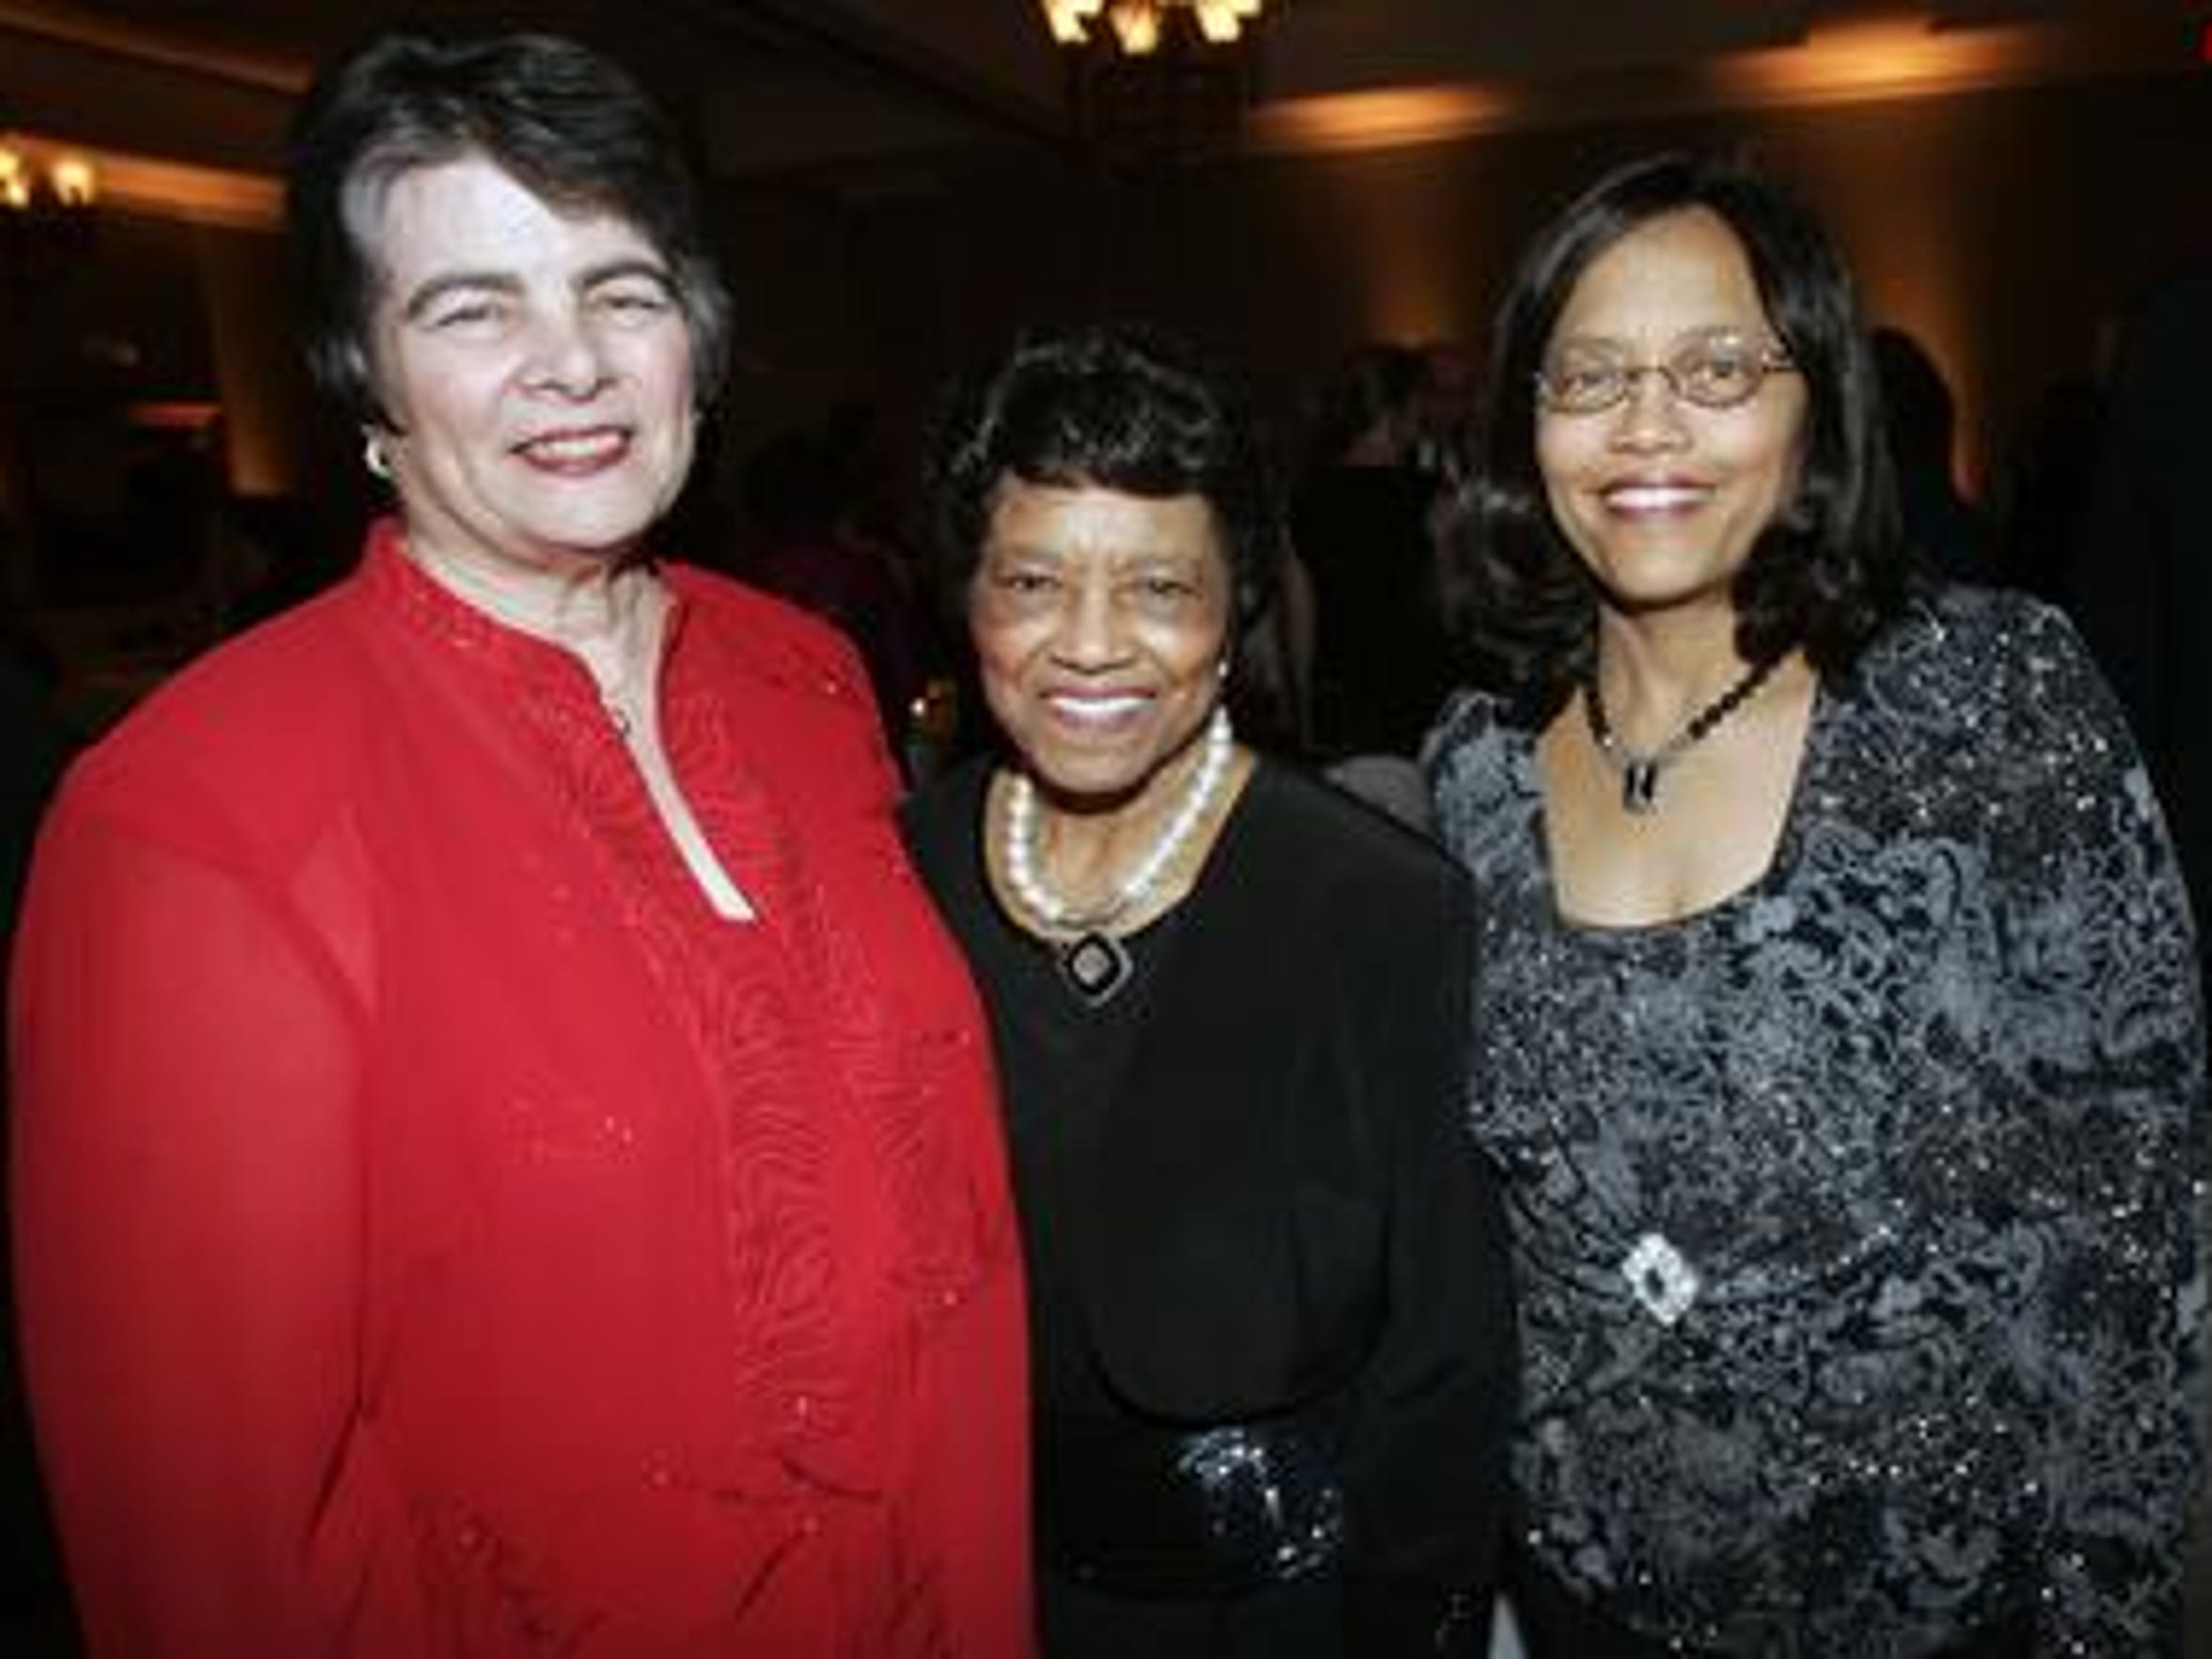 Murfreesboro Schools Director Linda Gilbert, left, stands with Mary Scales, center, and Madelyn Scales Harris at the Excellence in Education Celebration at Stones River Country Club in 2011.